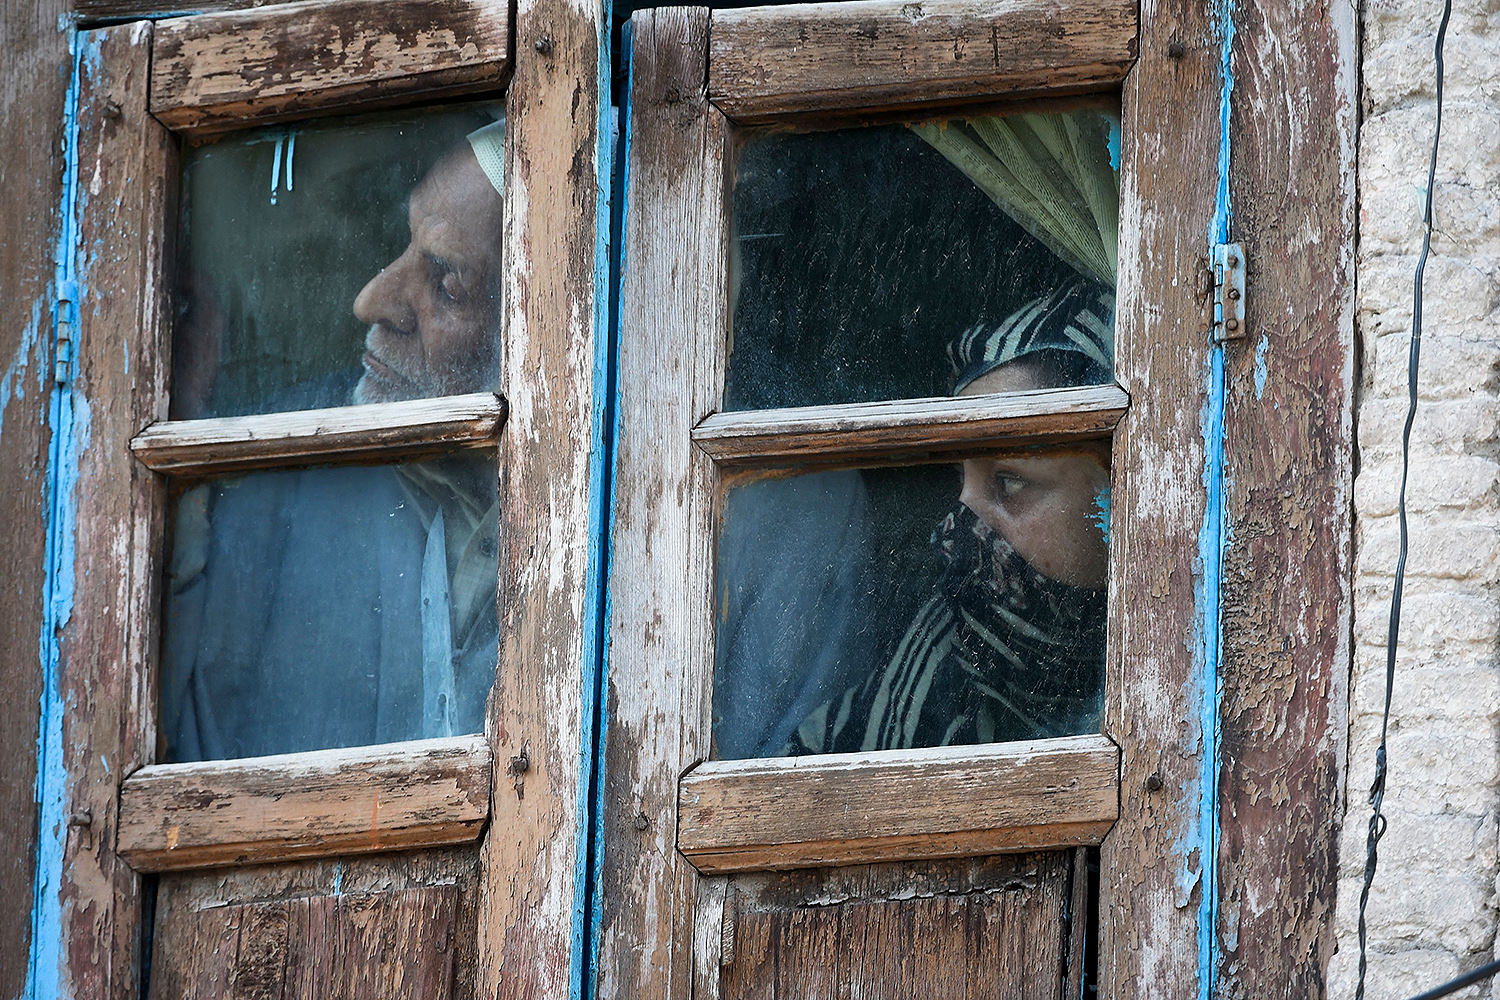 Residents watch from their window as a gun battle takes place between suspected militants and government forces in Srinagar, India, on May 19. Two Kashmir militants, including a key rebel leader, were killed in the 12-hour gun battle. TAUSEEF MUSTAFA/AFP via Getty Images